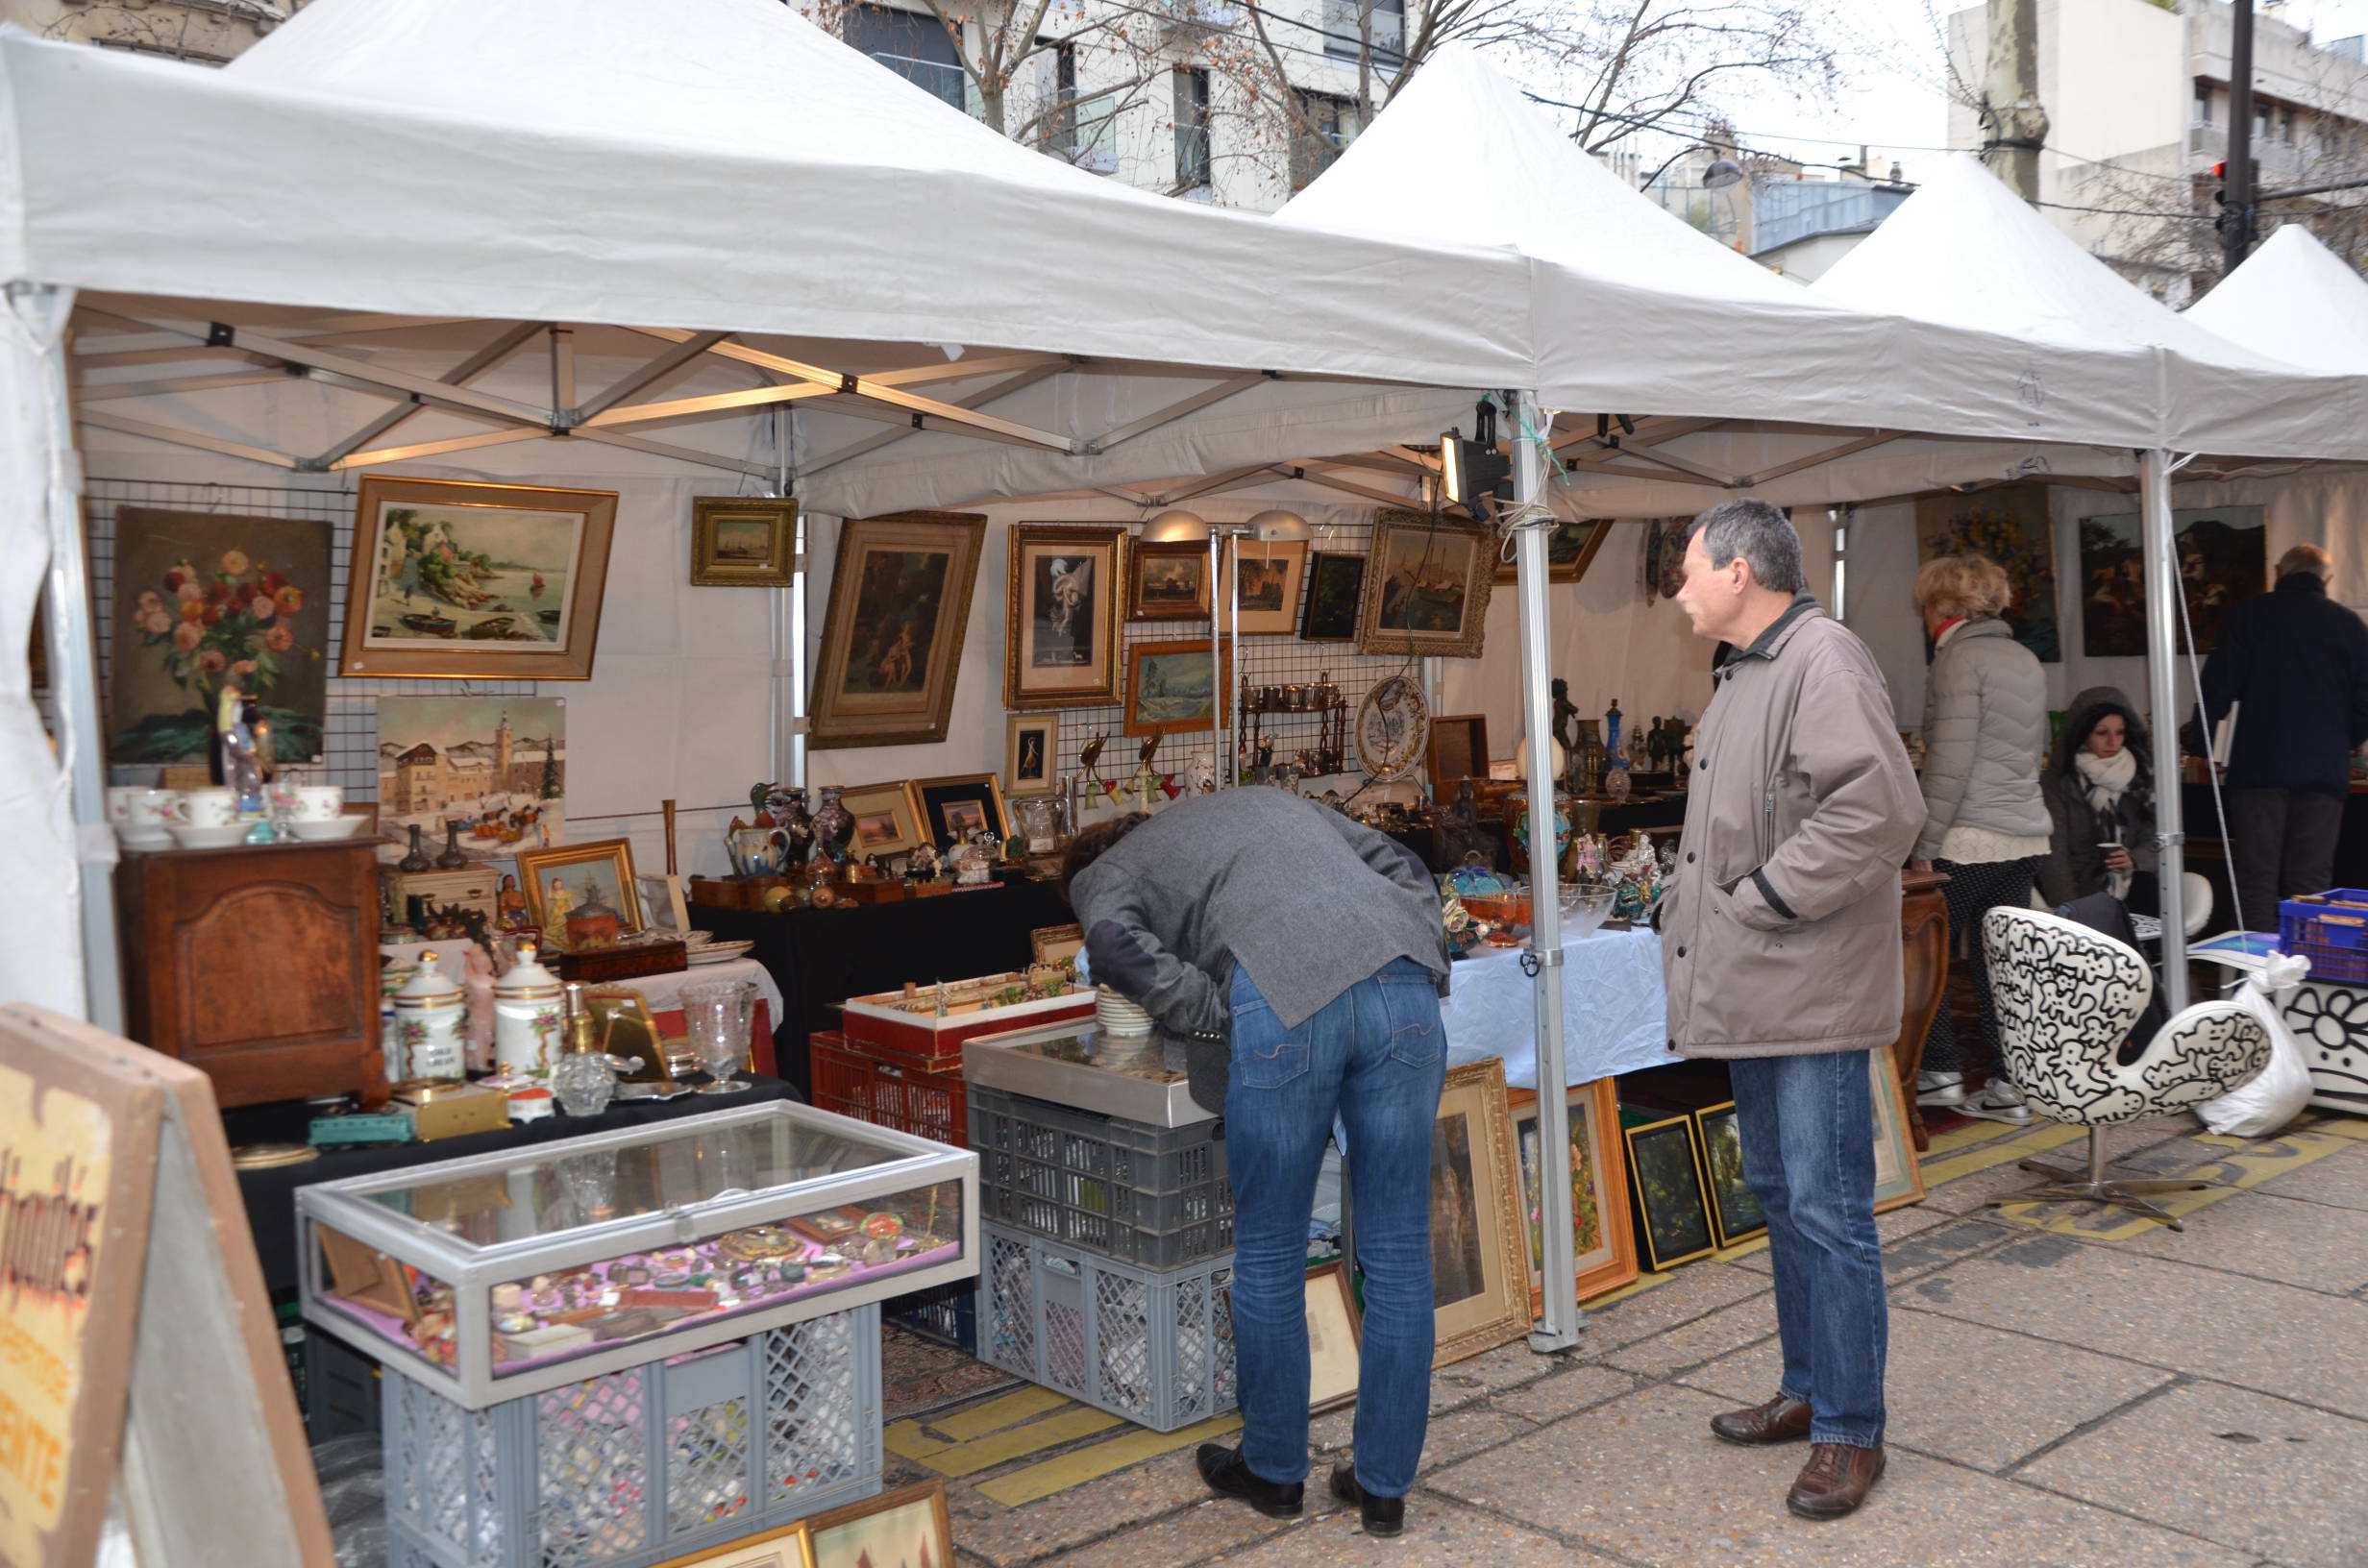 LeTheon Brocanteur Brocante rue clerc Paris 75